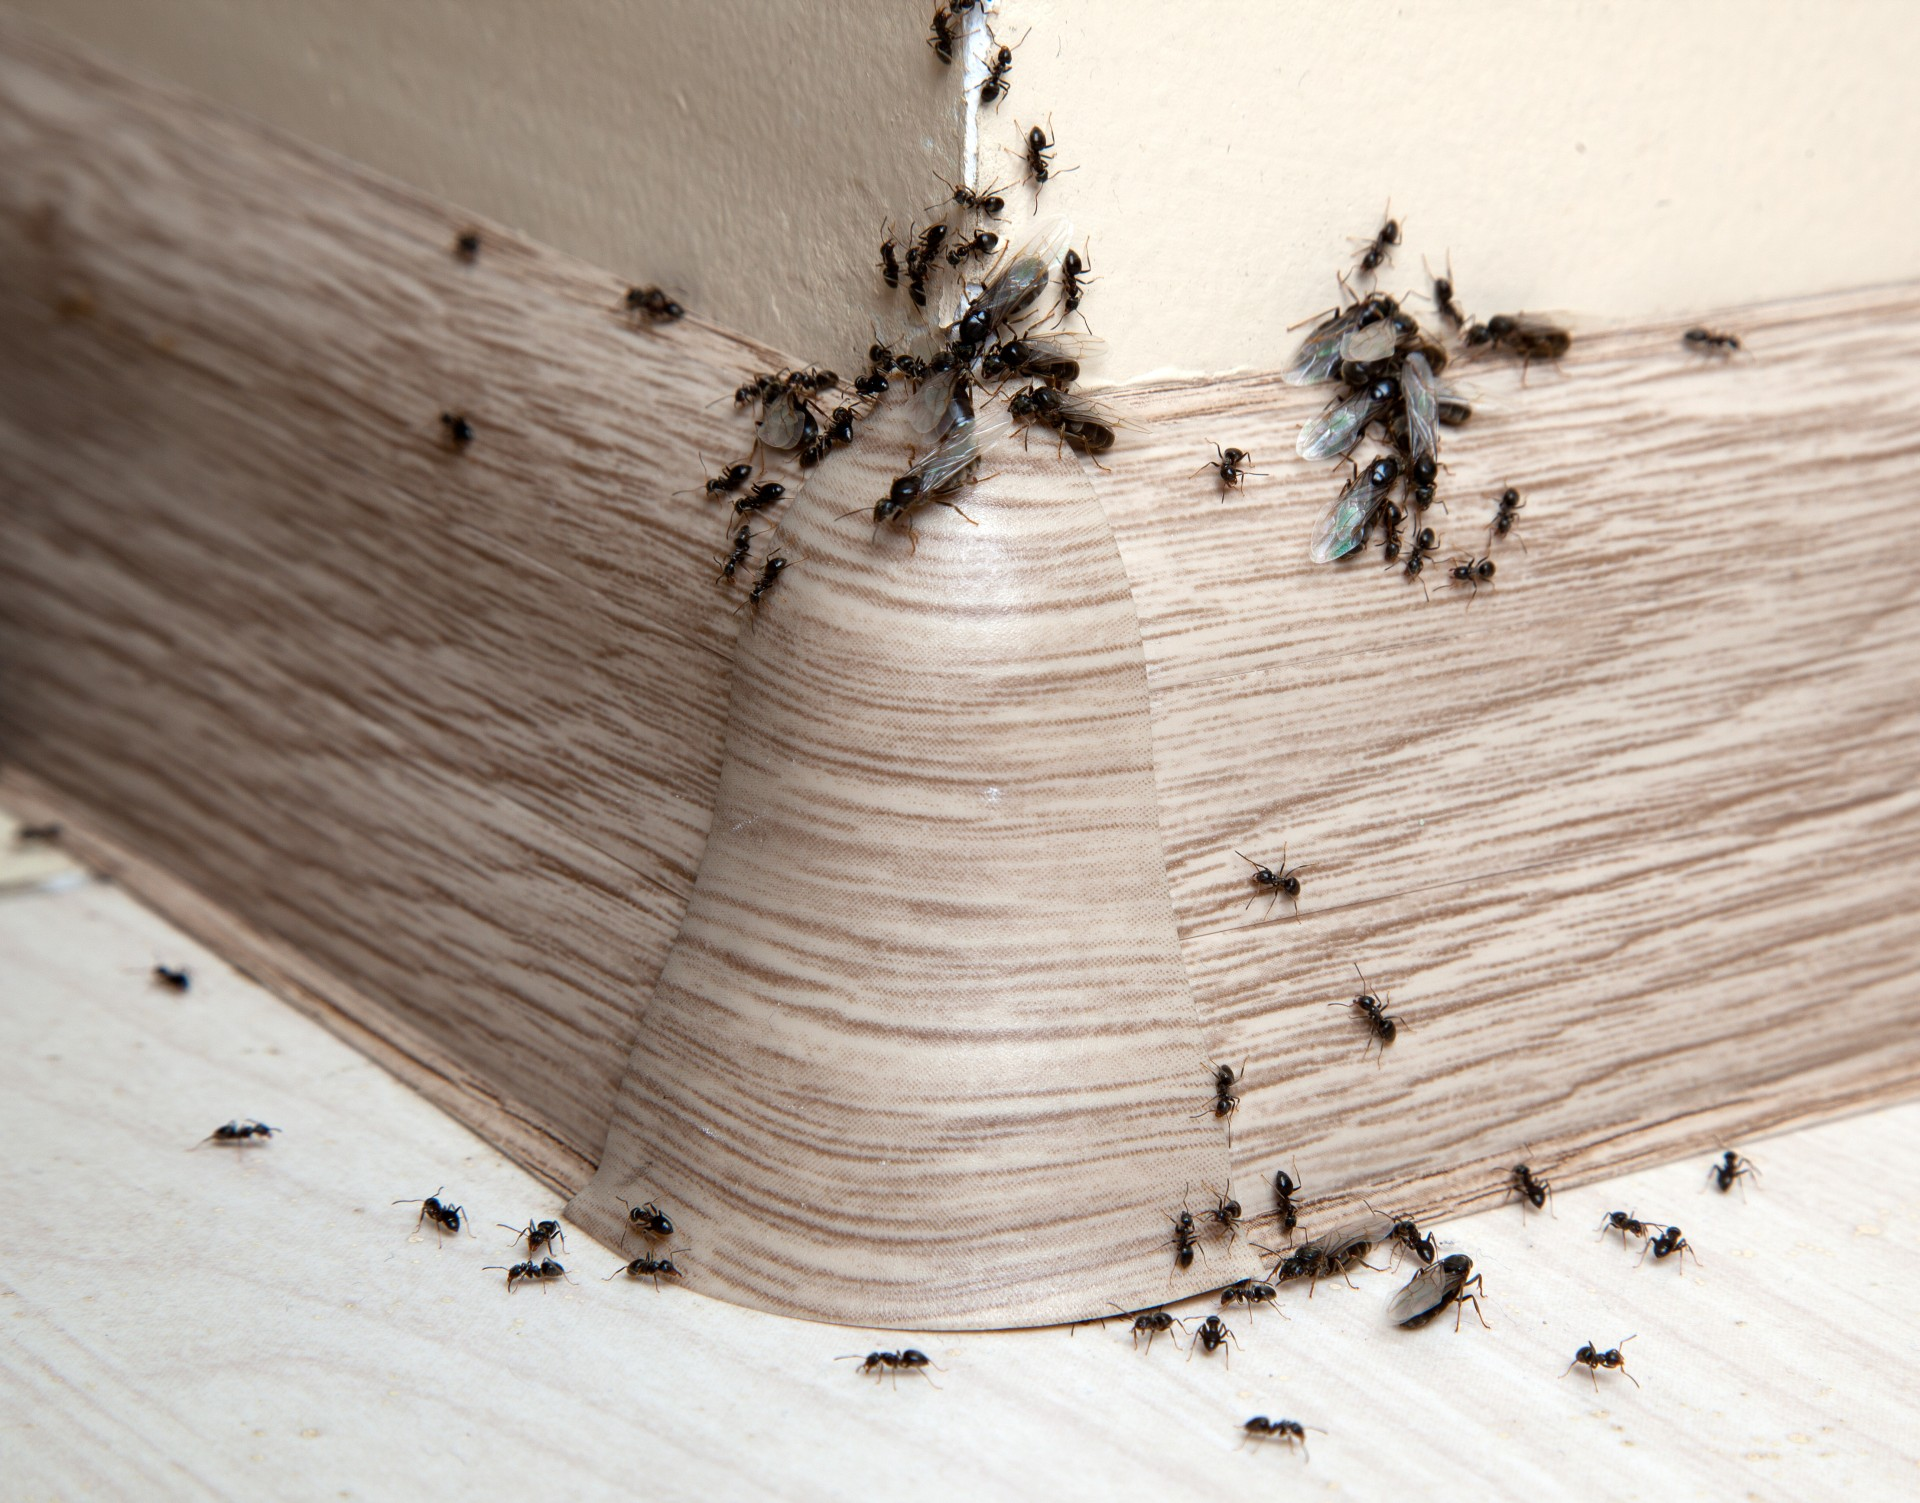 Ant Infestation, Pest Control in East Dulwich, SE22. Call Now 020 8166 9746